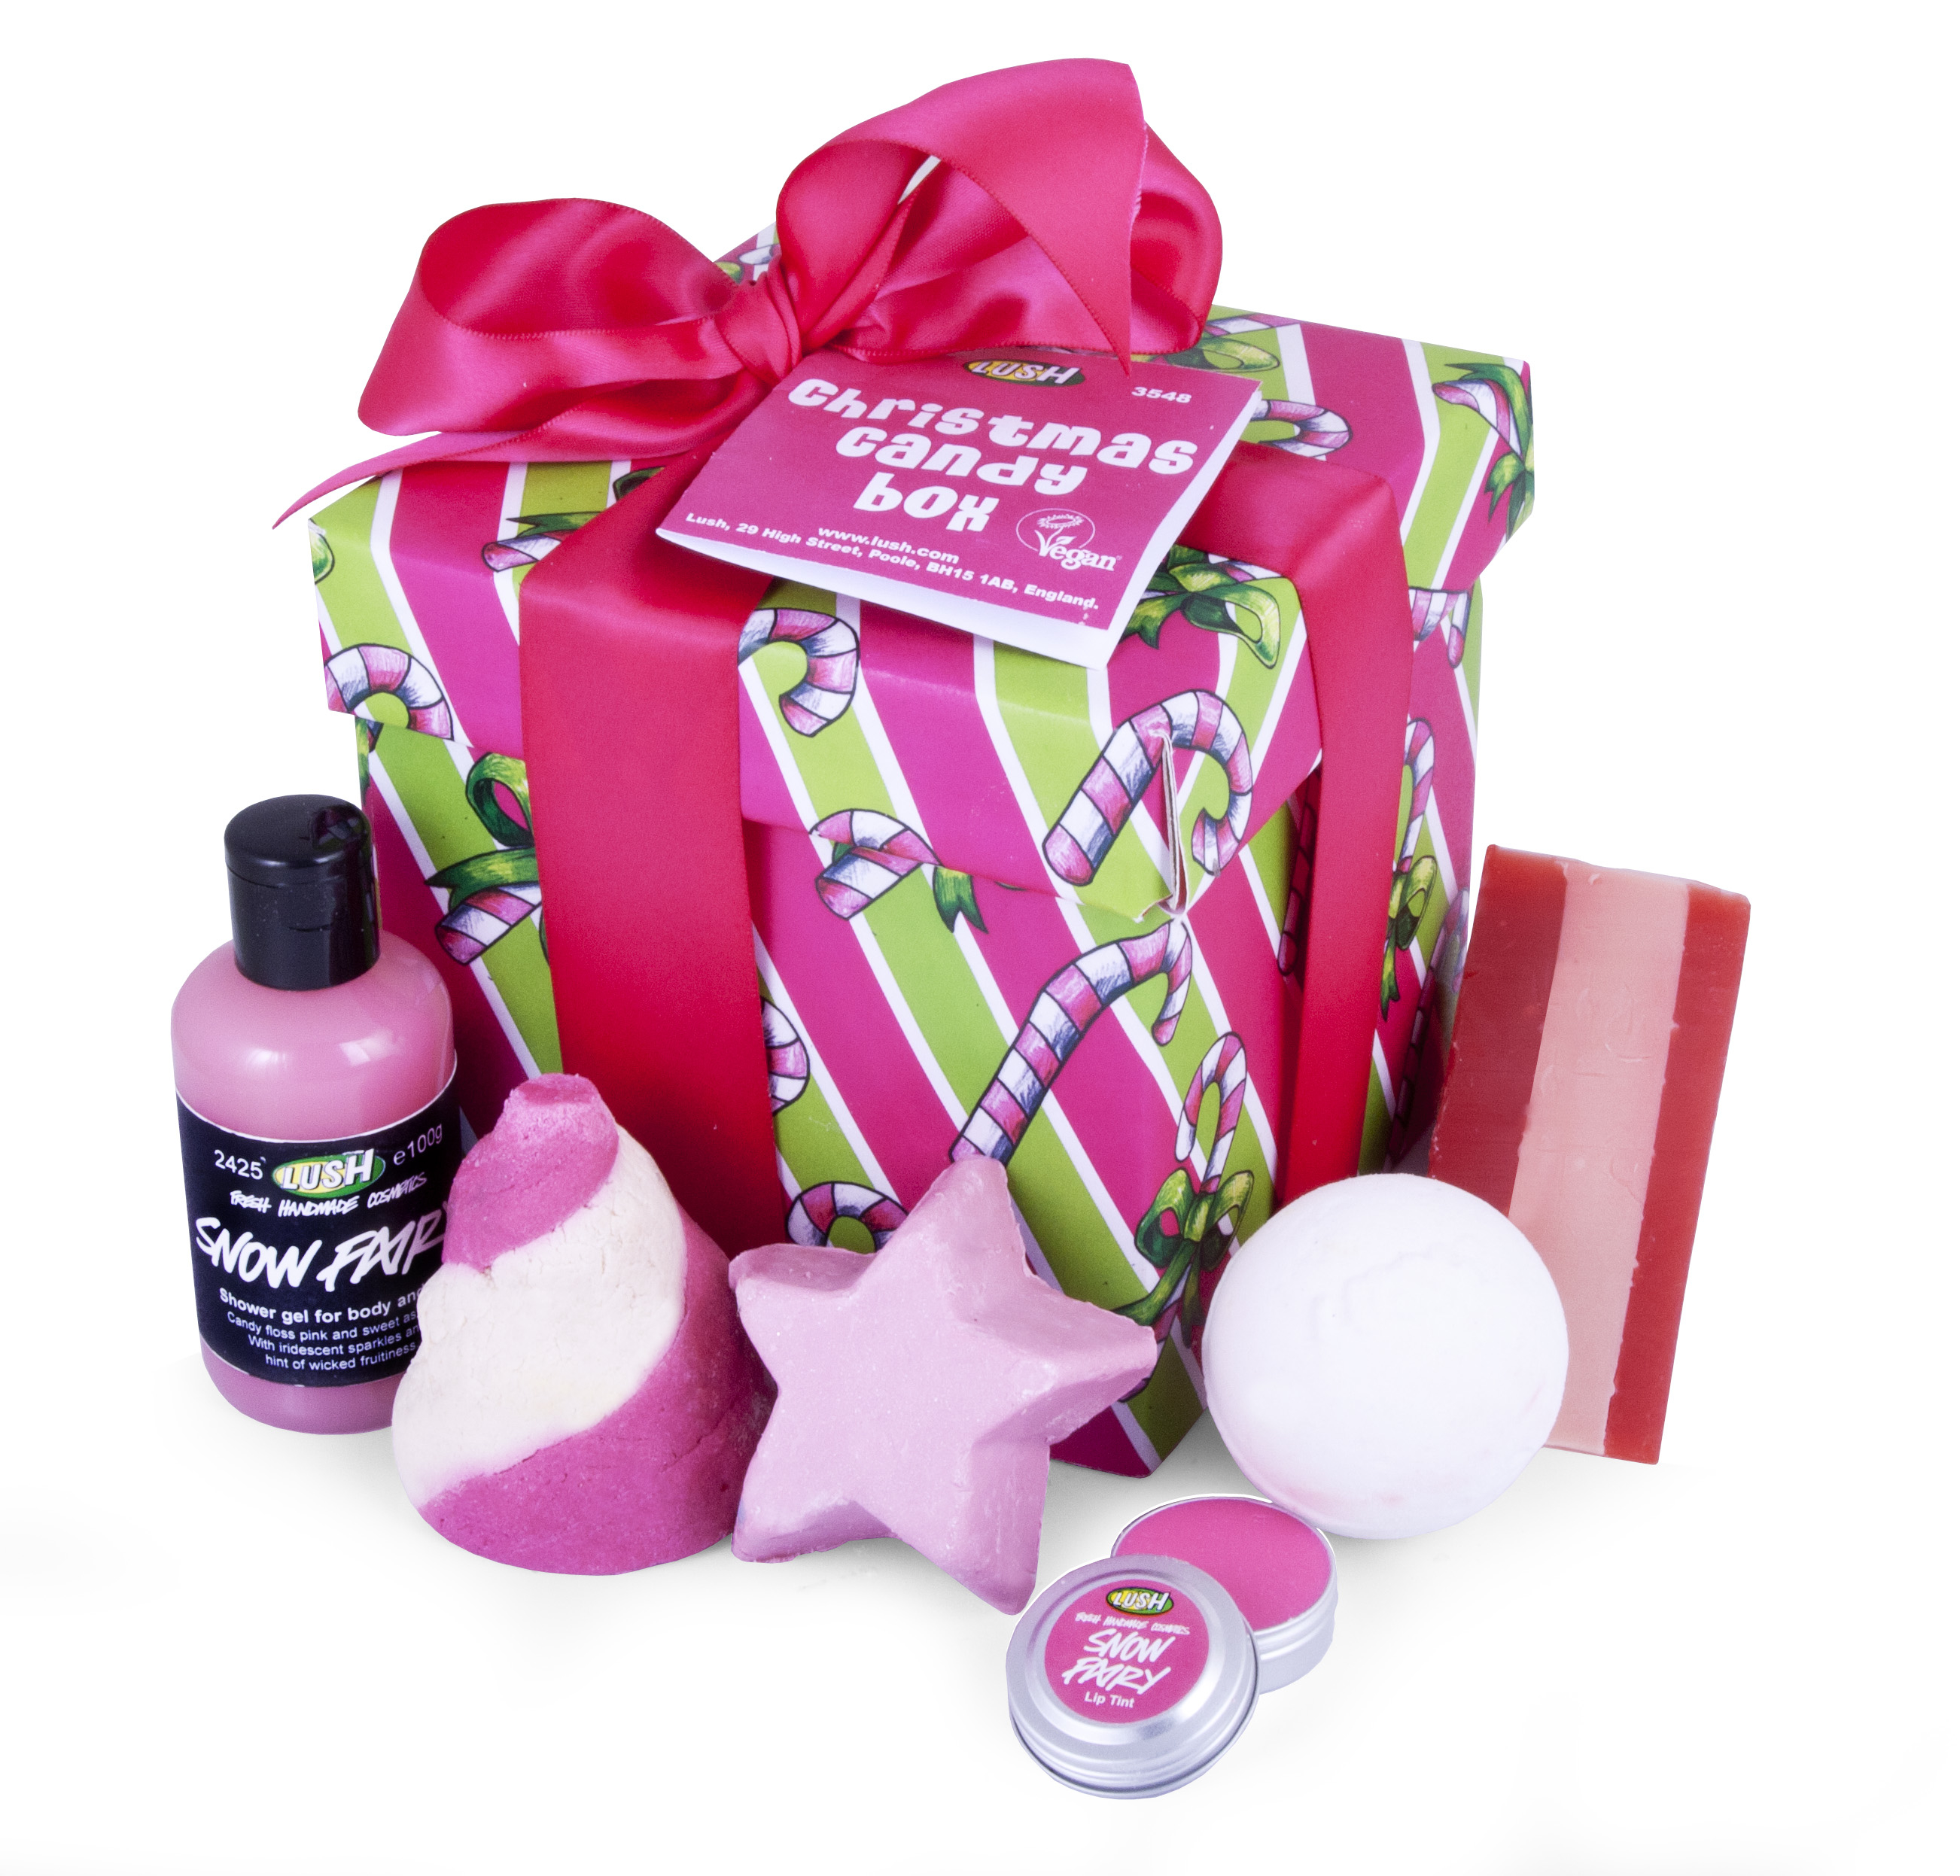 Lush Holiday Gift Guide! – POLISHED blog